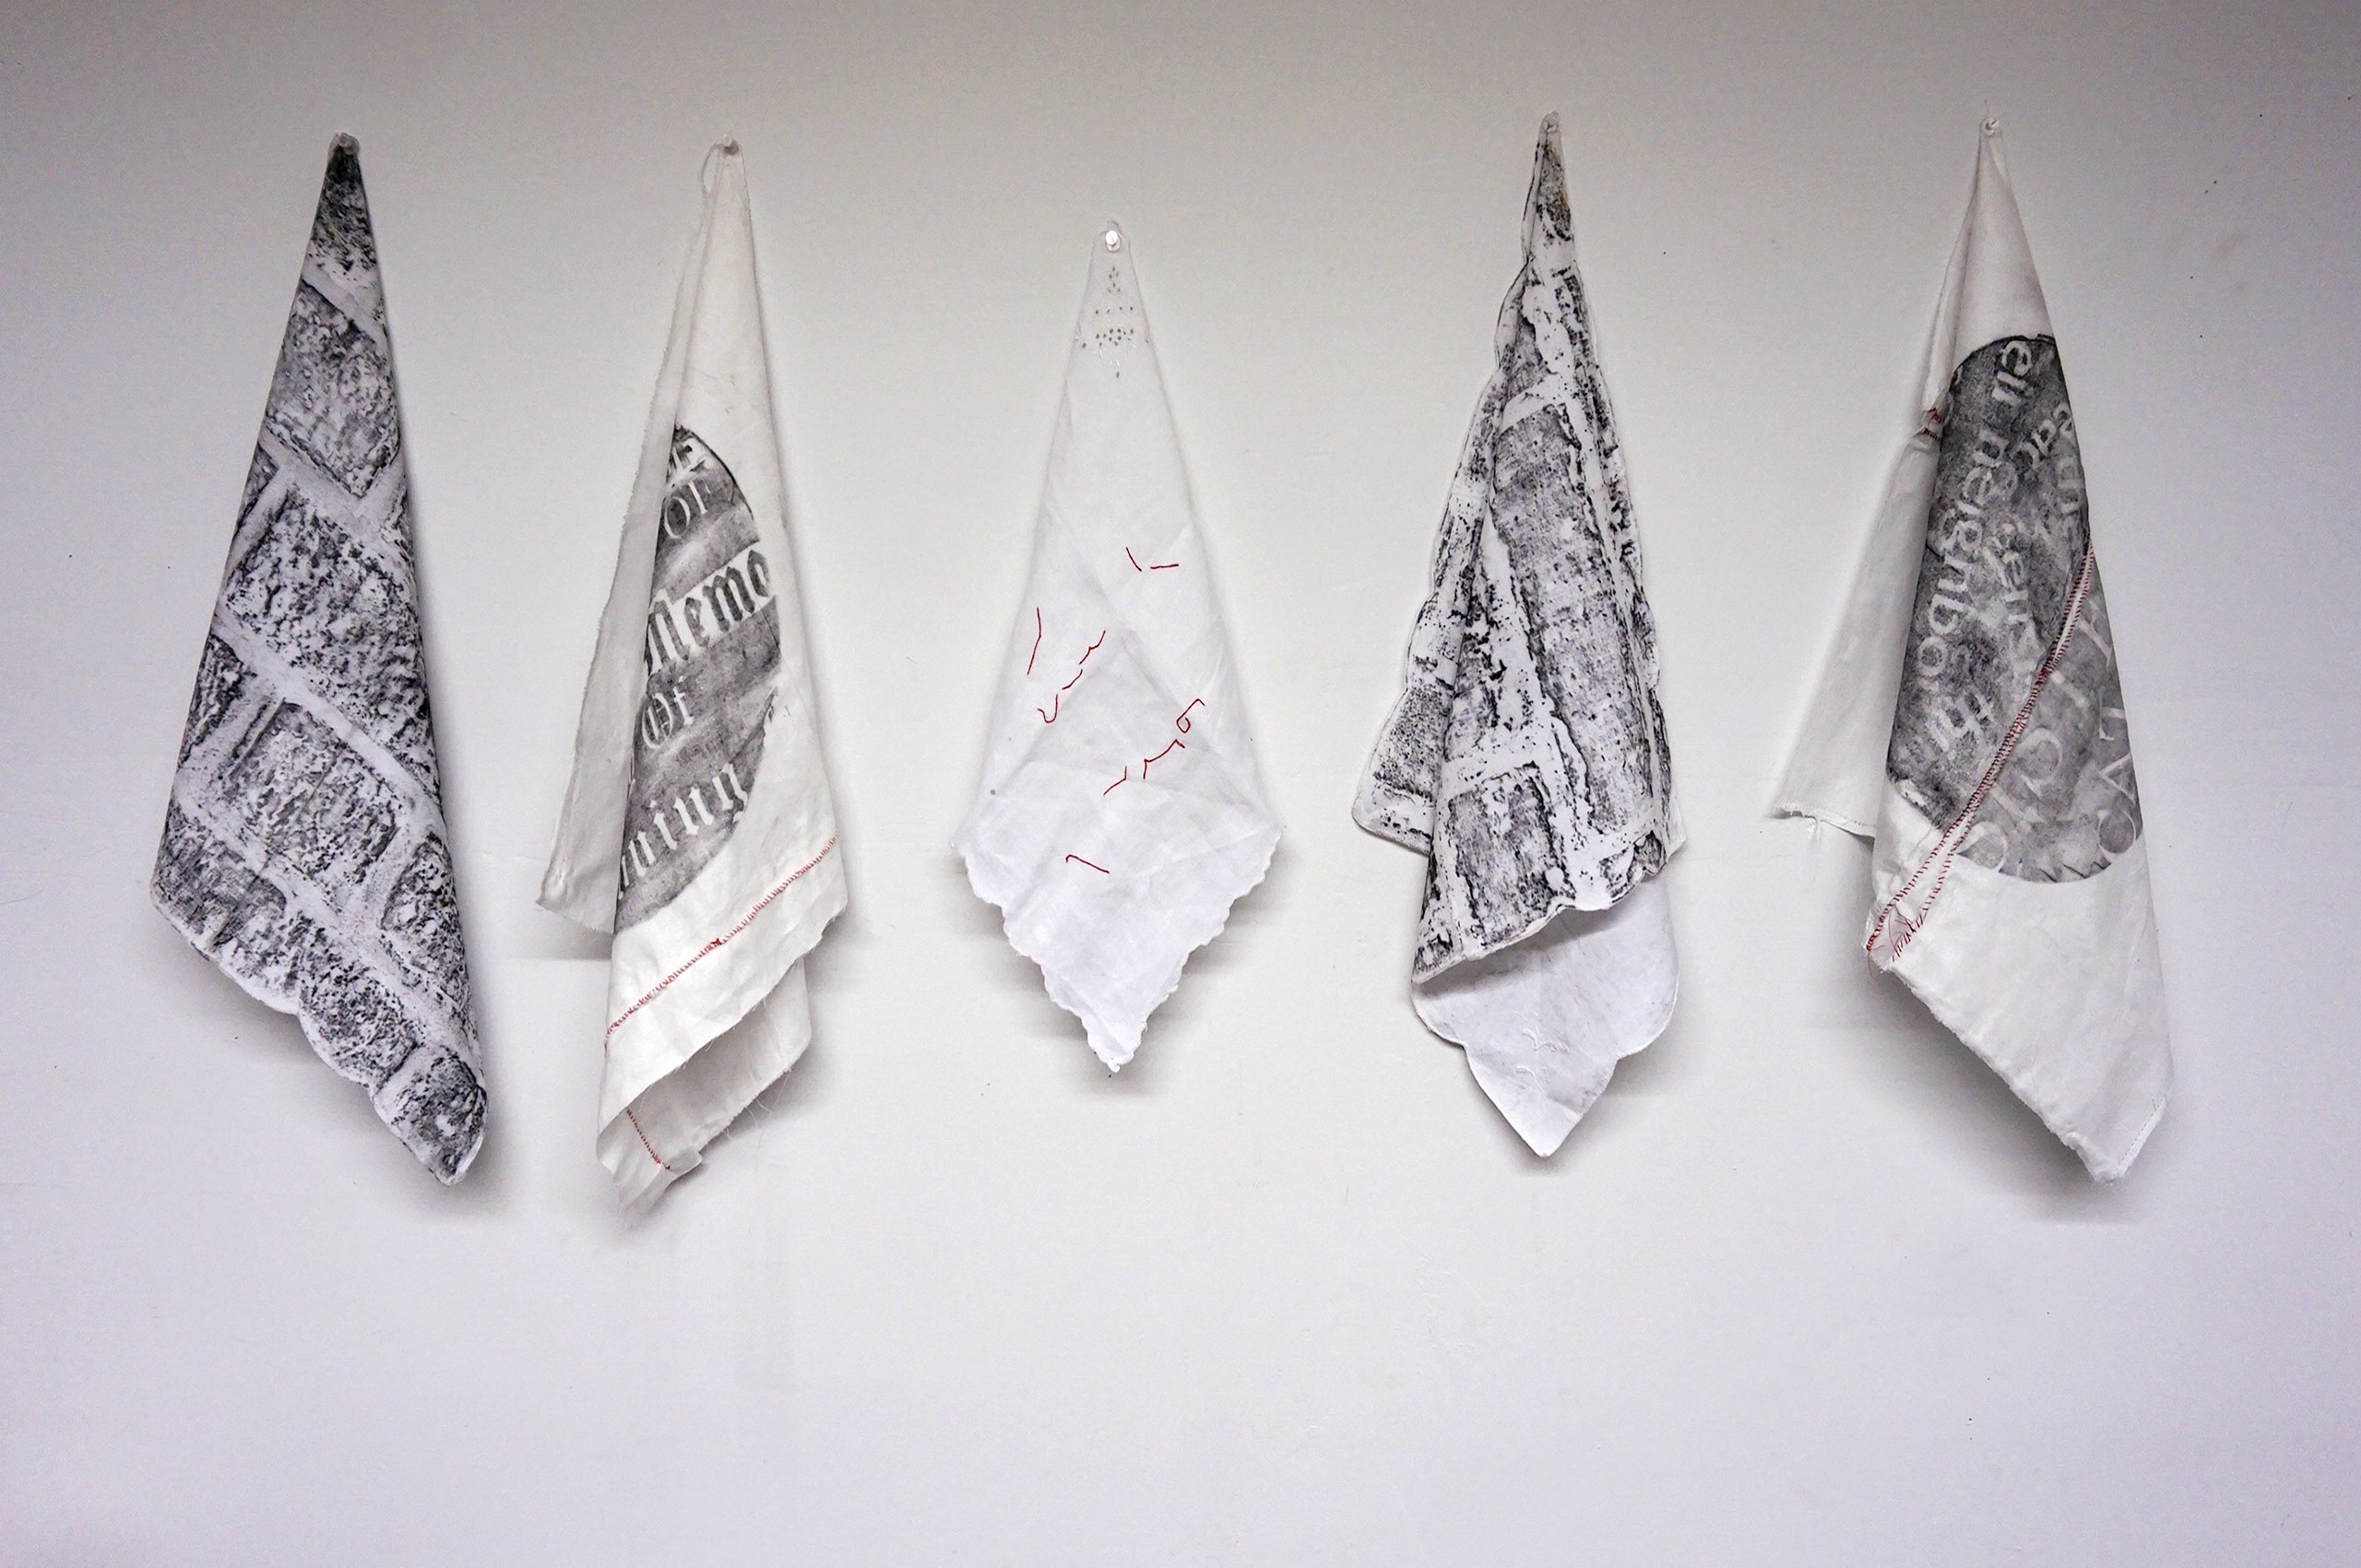 Sketches and rubbings on white linen